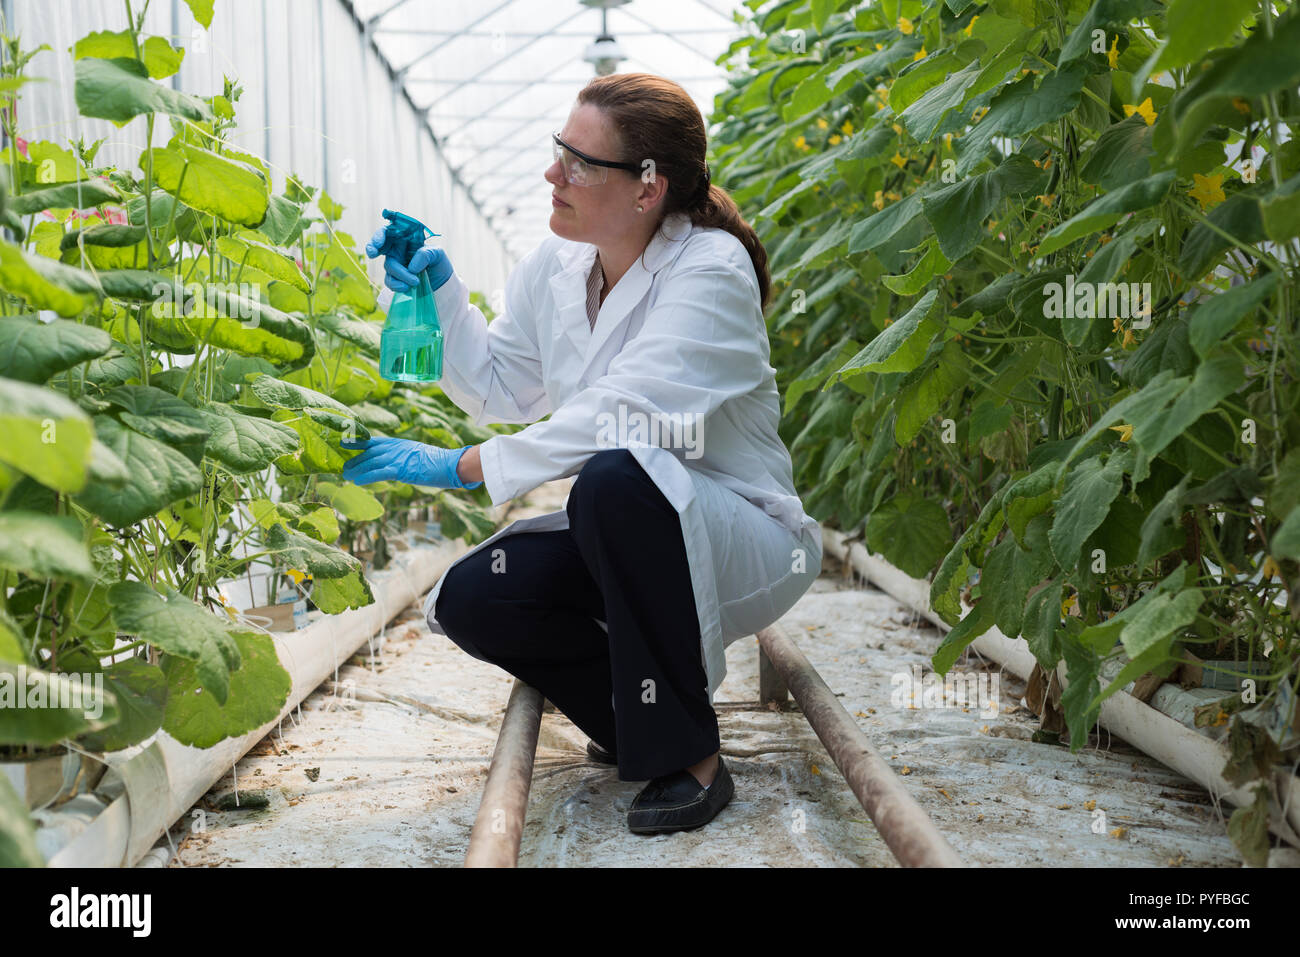 Scientist watering plants in greenhouse - Stock Image